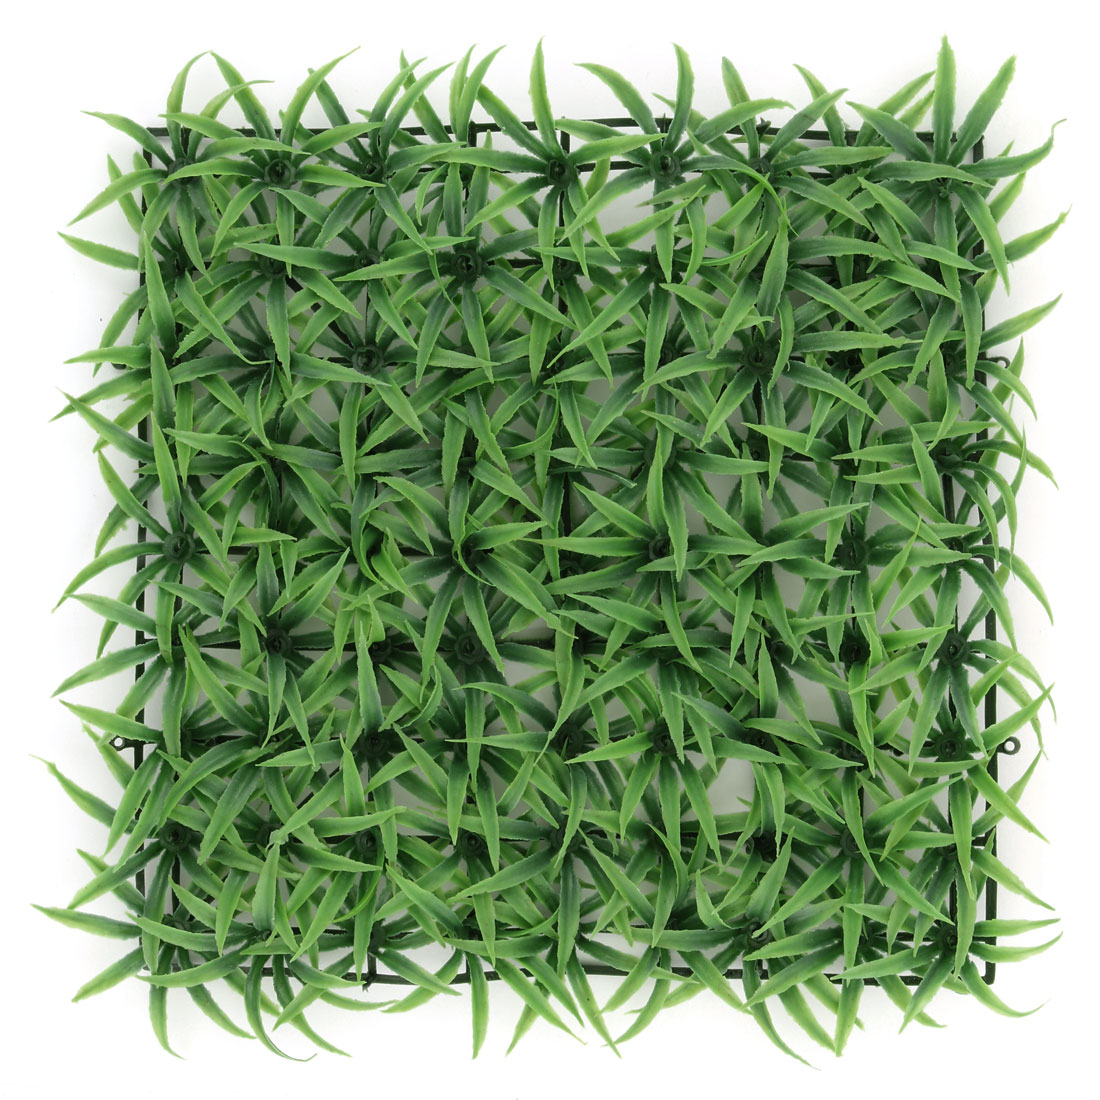 Aquarium Fish Tank Plastic Manmade Emulation Square Lawn Grass Plant Decor Green